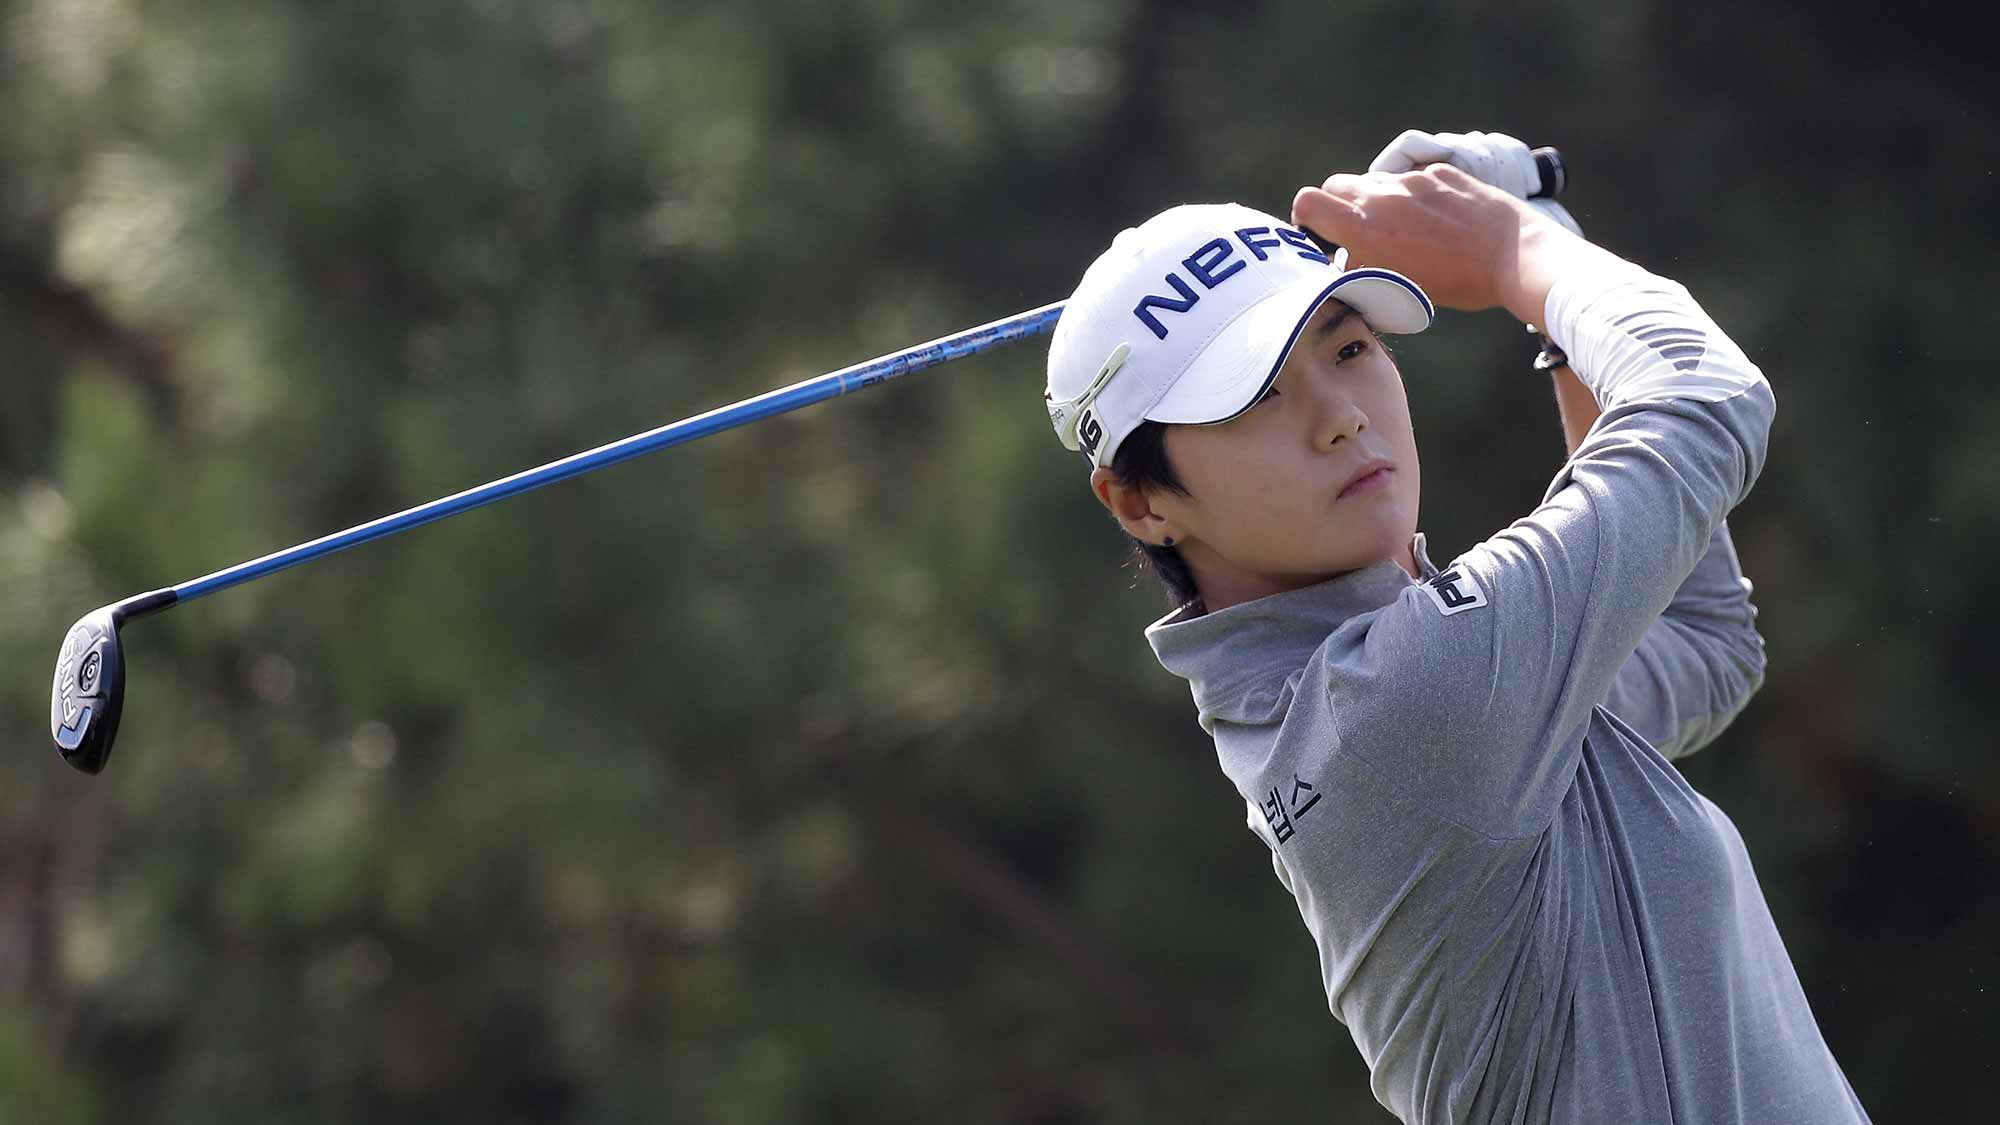 Sung Hyun Park of South Korea plays a tee shot on the 4th hole during round three of the LPGA KEB Hana Bank